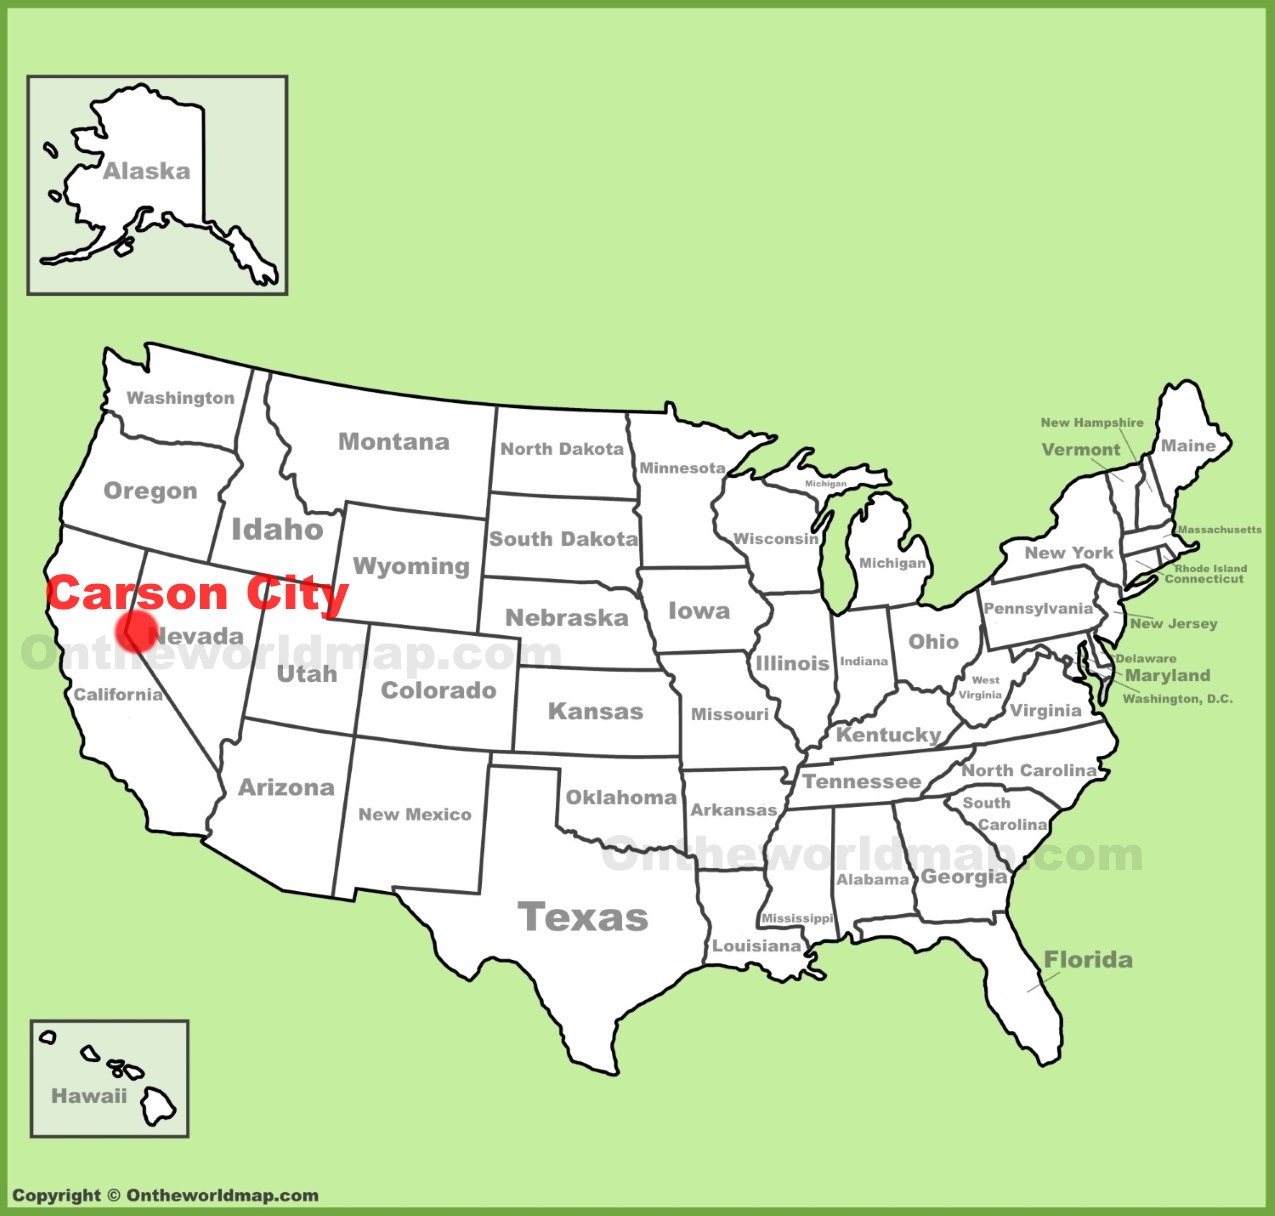 Carson City location on the U.S. Map on